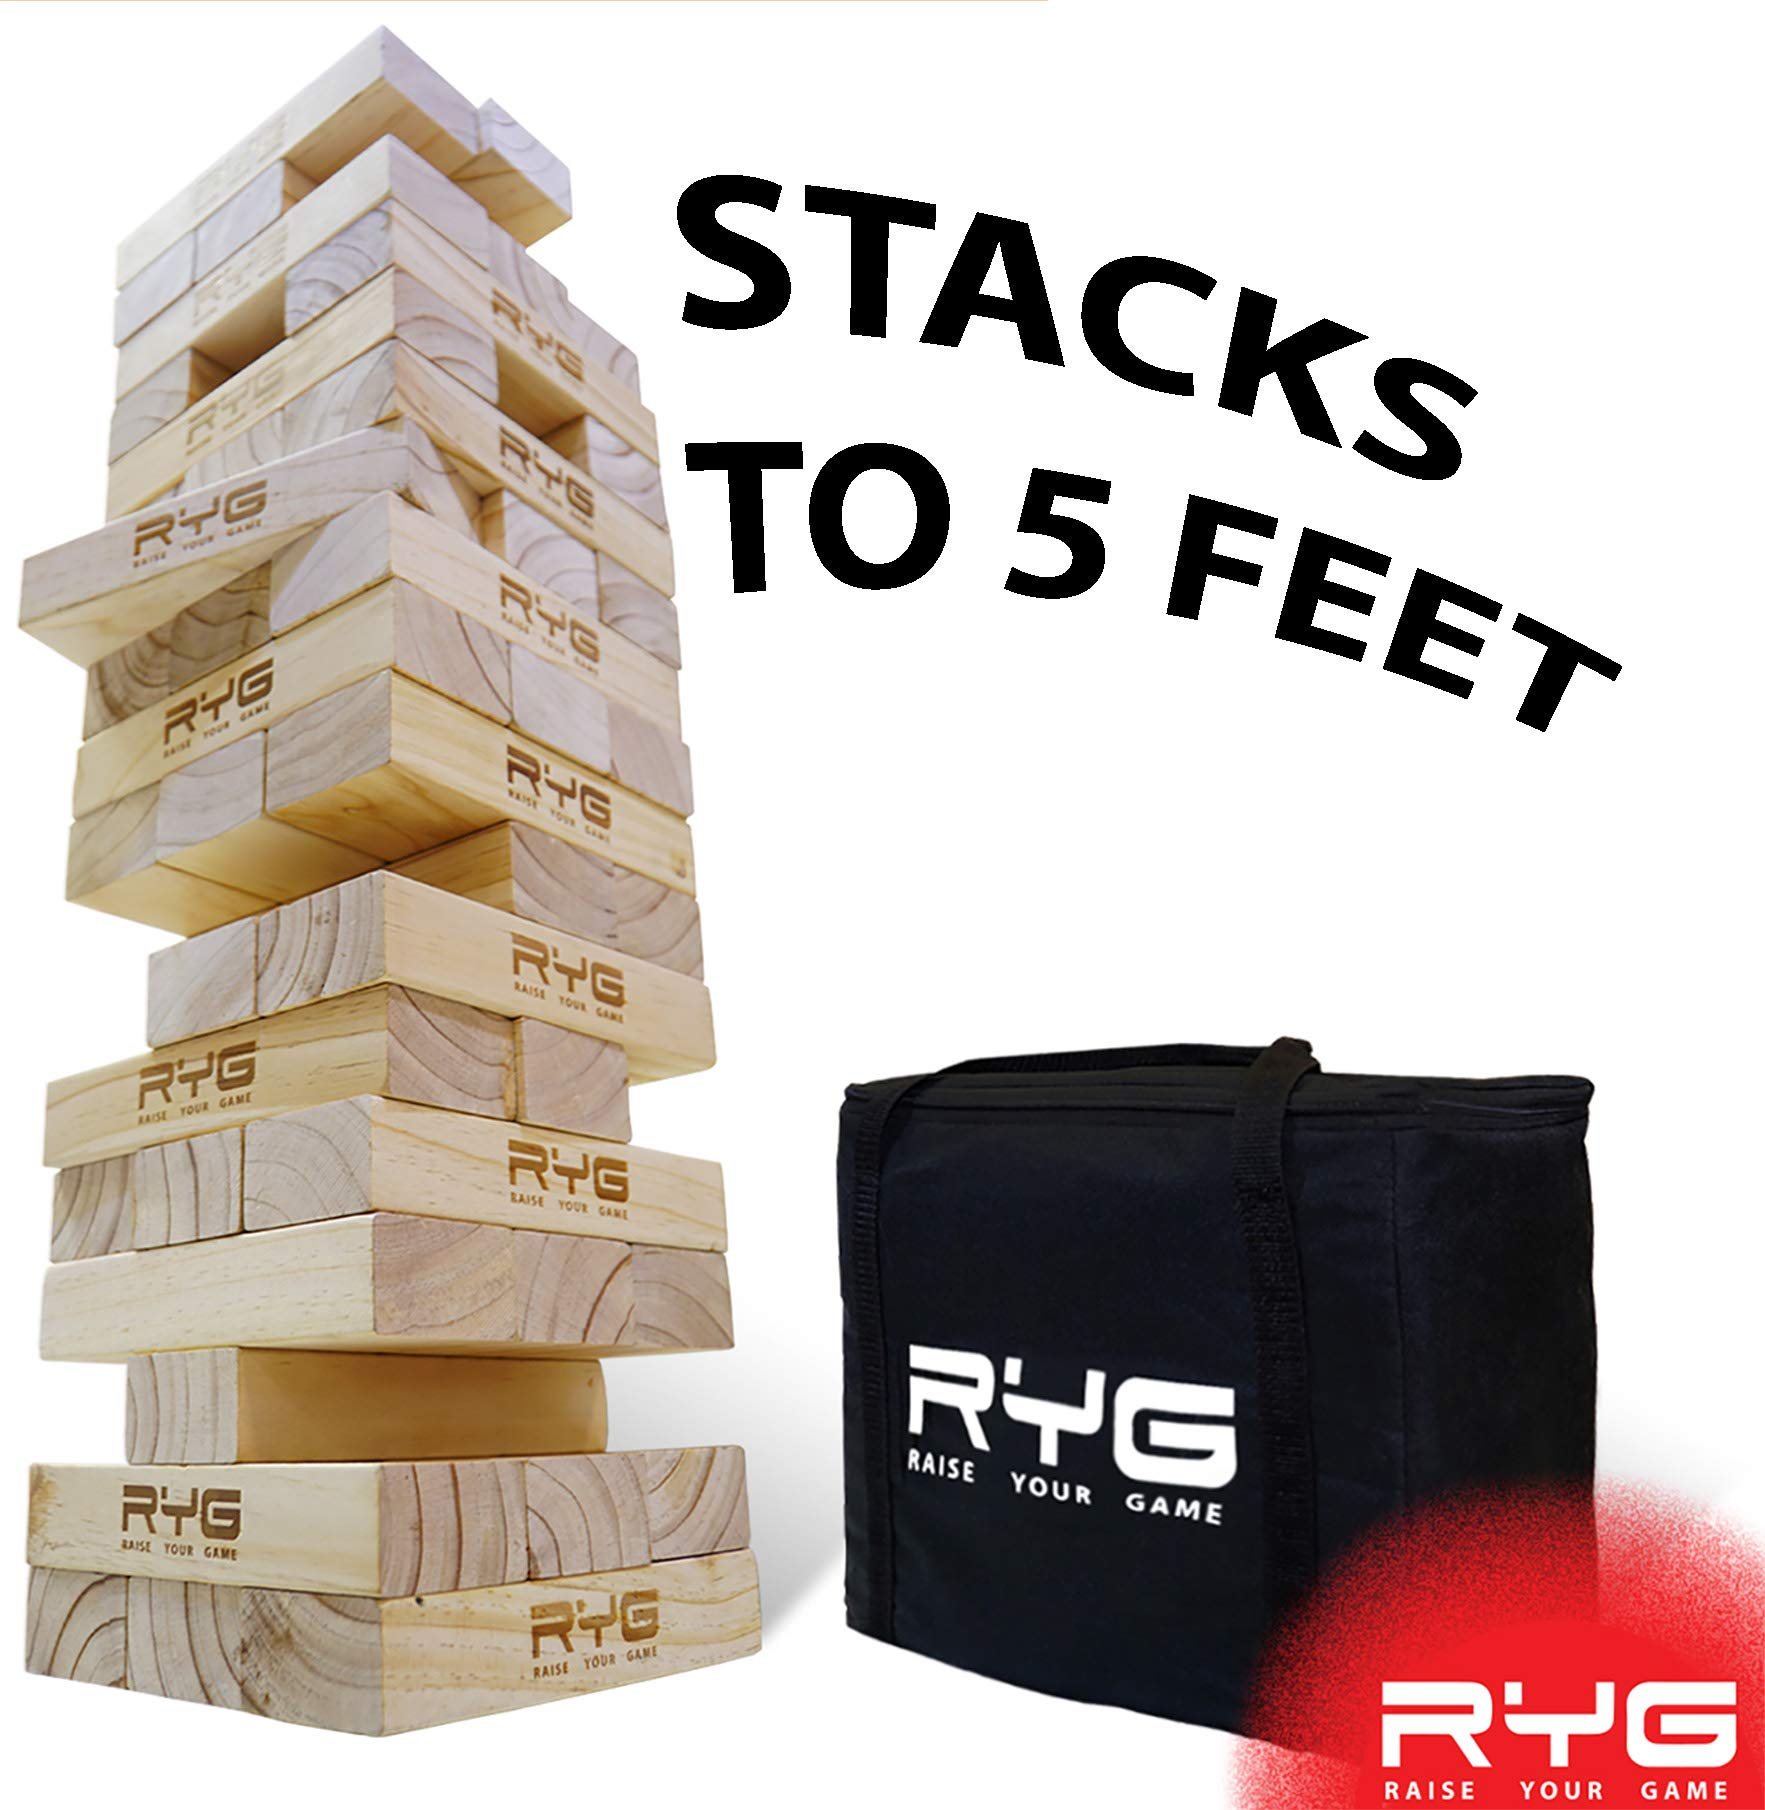 RYG Giant Wooden Toppling Tower, Large Tumbling Timbers Blocks, Wood Stacking Yard Game Jumbo Backyard Set with Carrying Case by Raise Your Game